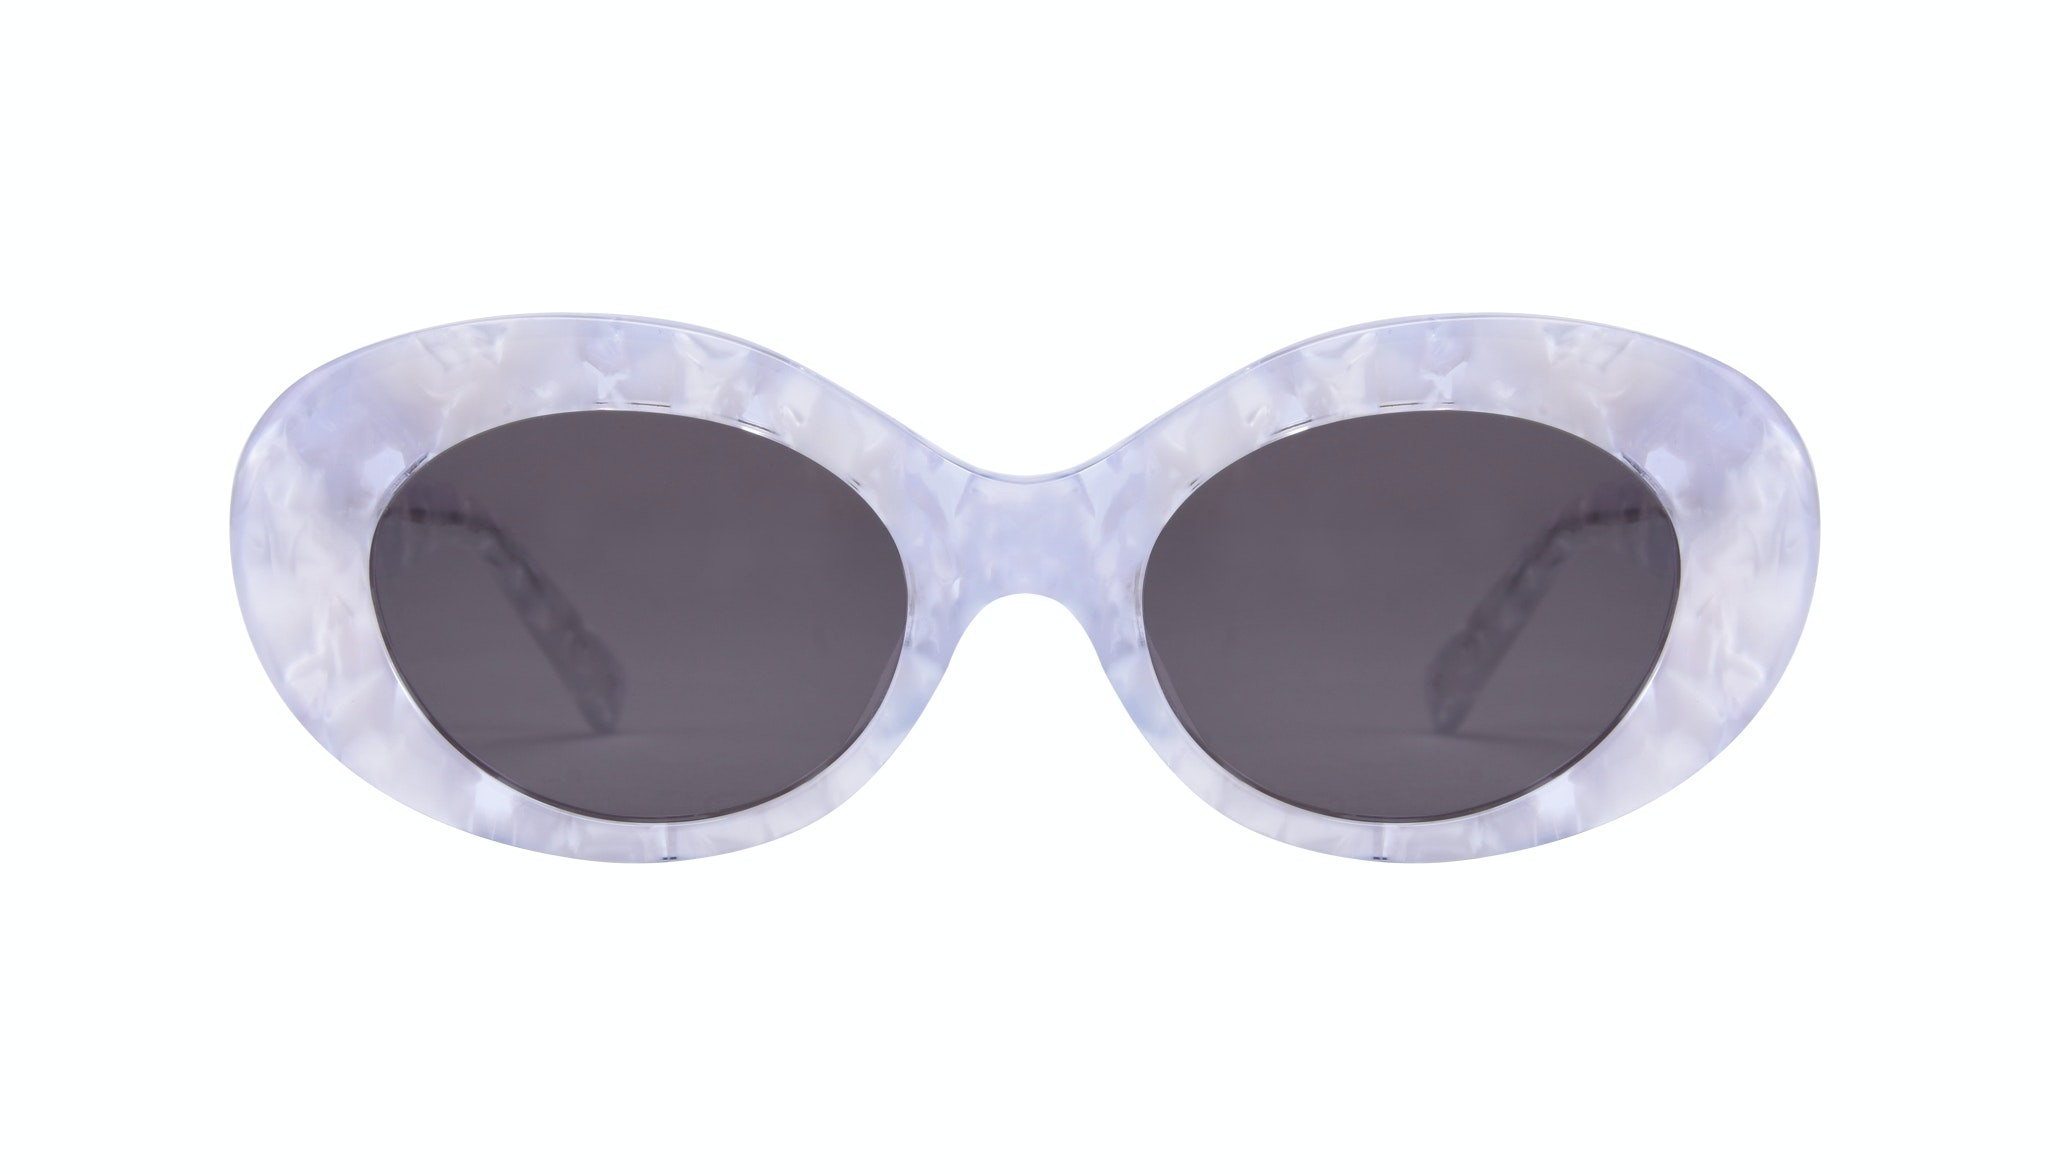 Affordable Fashion Glasses Round Sunglasses Women Galactic Moon Front